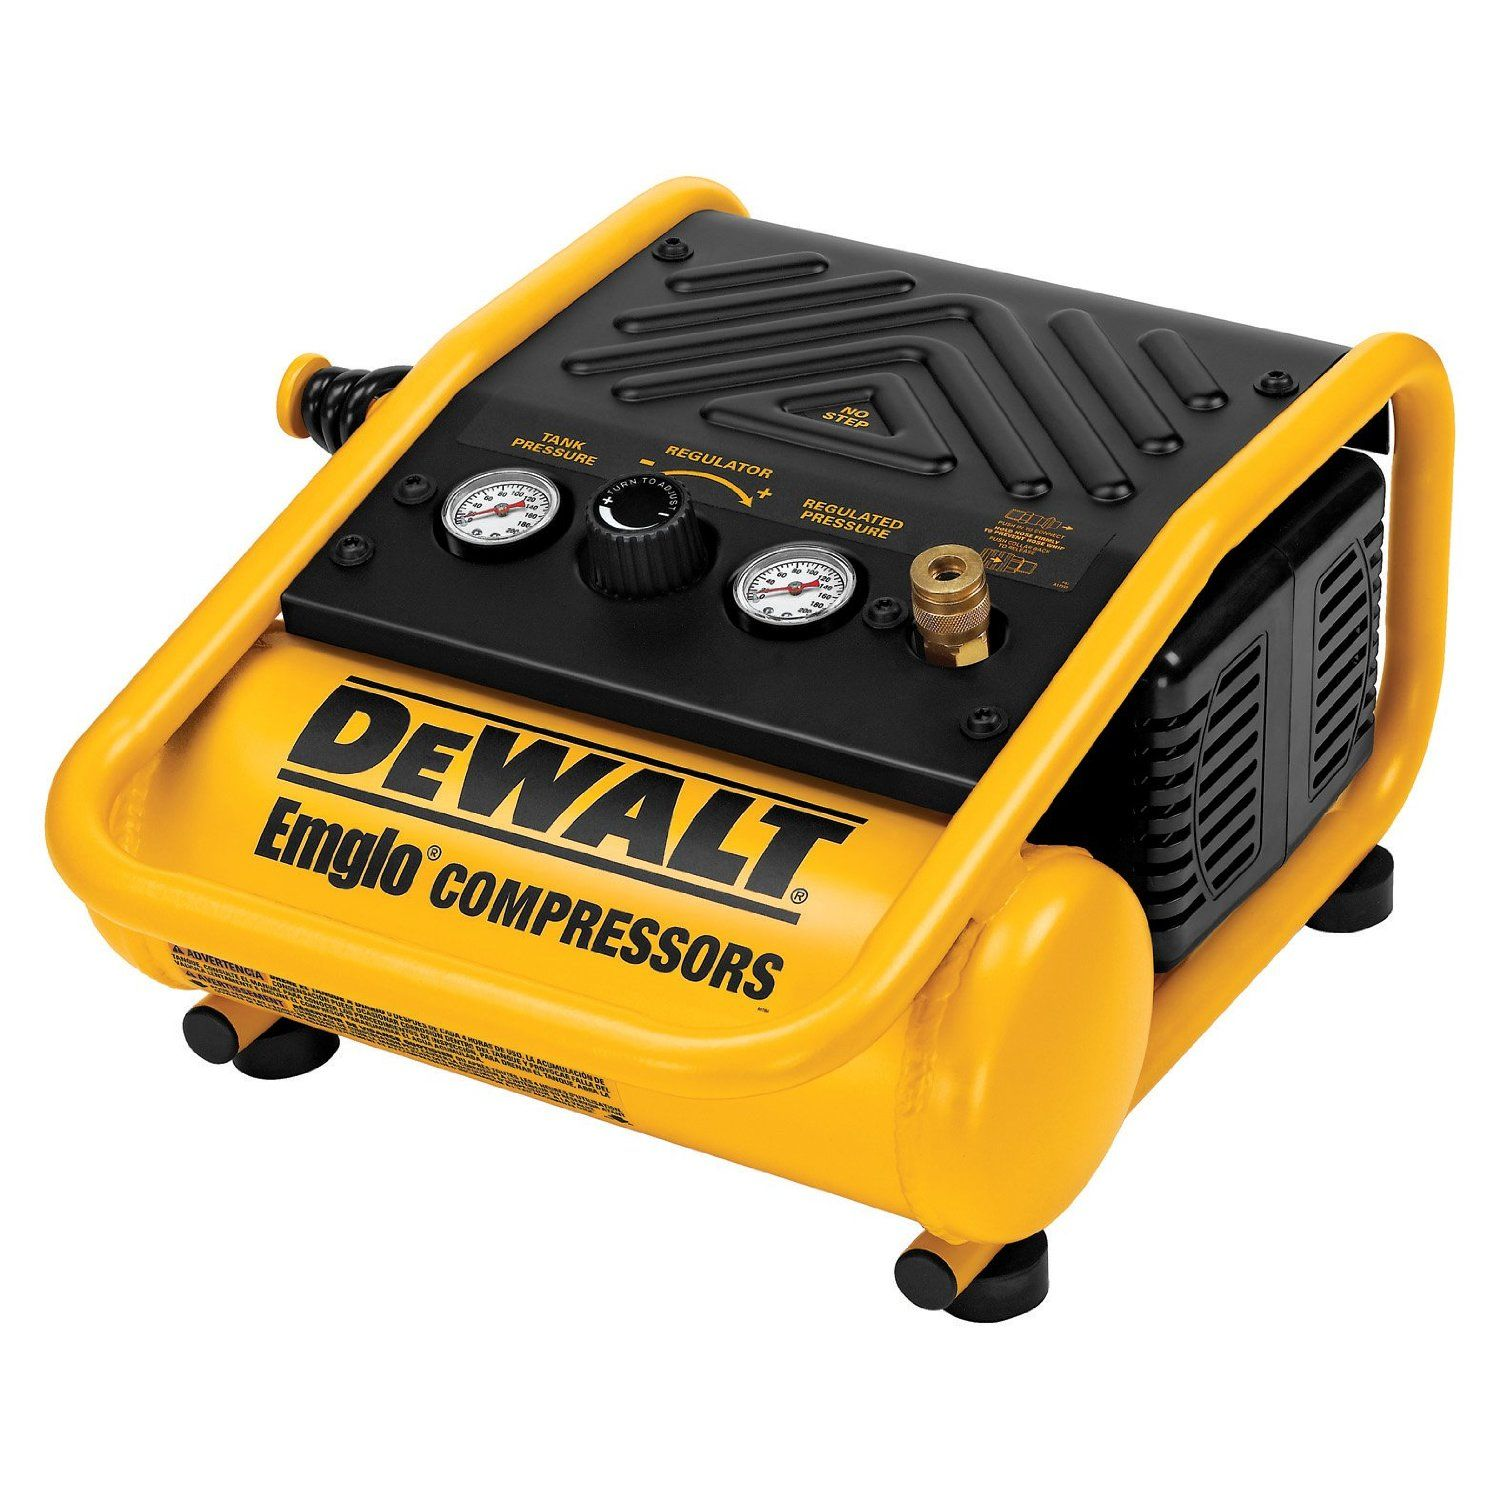 DEWALT D55140 Max Trim 1 Gallon Air Compressor 135 PSI